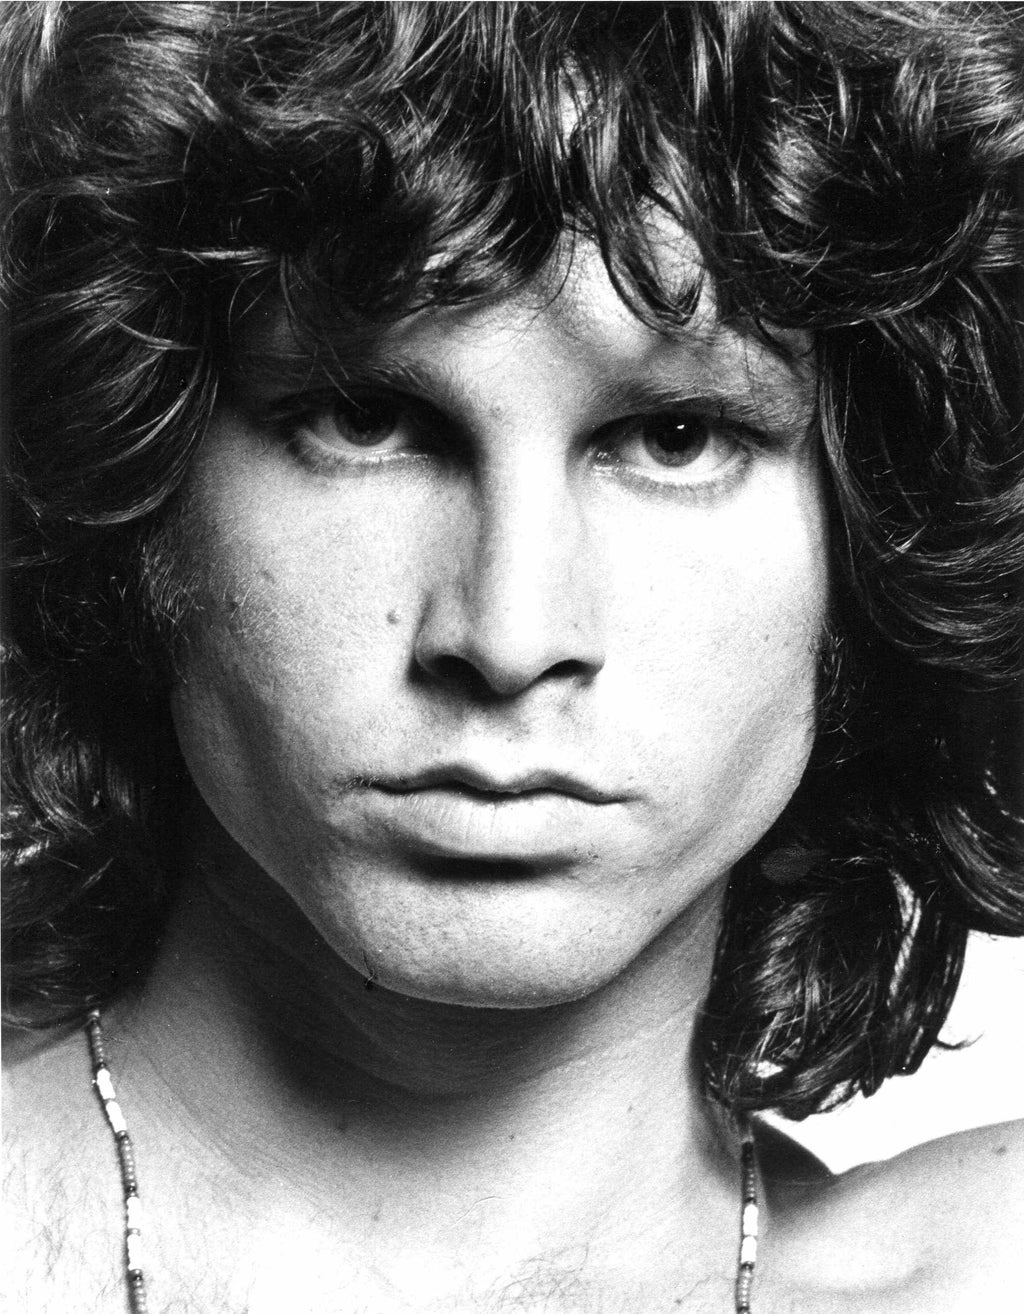 Vintage Photograph of Jim Morrison, 1967